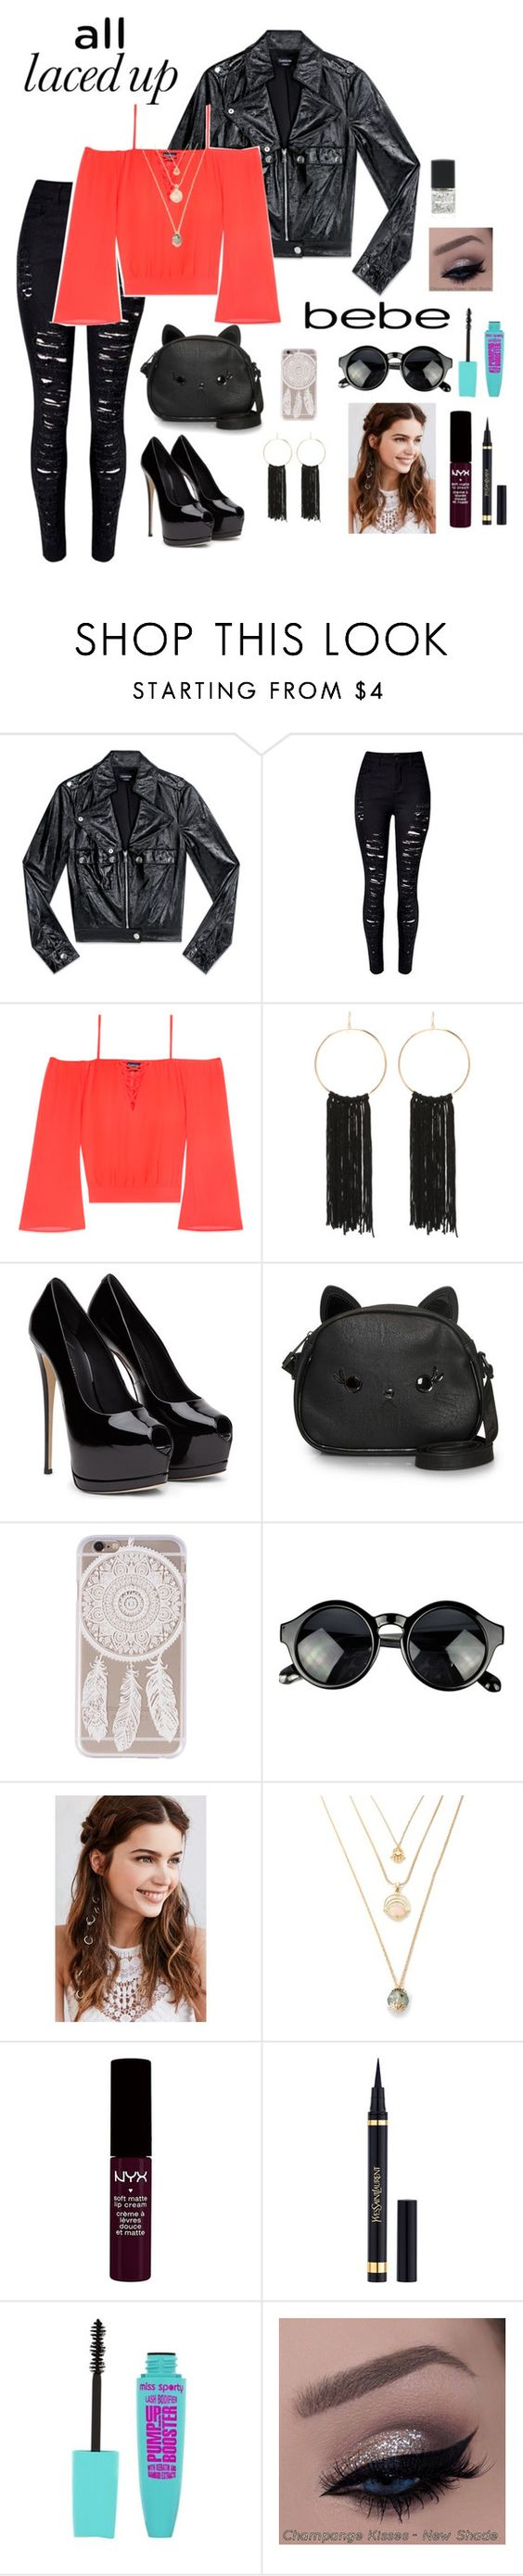 """""""All Laced Up for Spring with bebe: Contest Entry"""" by thatawkwardfangirljulia ❤ liked on Polyvore featuring Bebe, WithChic, Loungefly, REGALROSE, NYX, Yves Saint Laurent and alllacedup"""